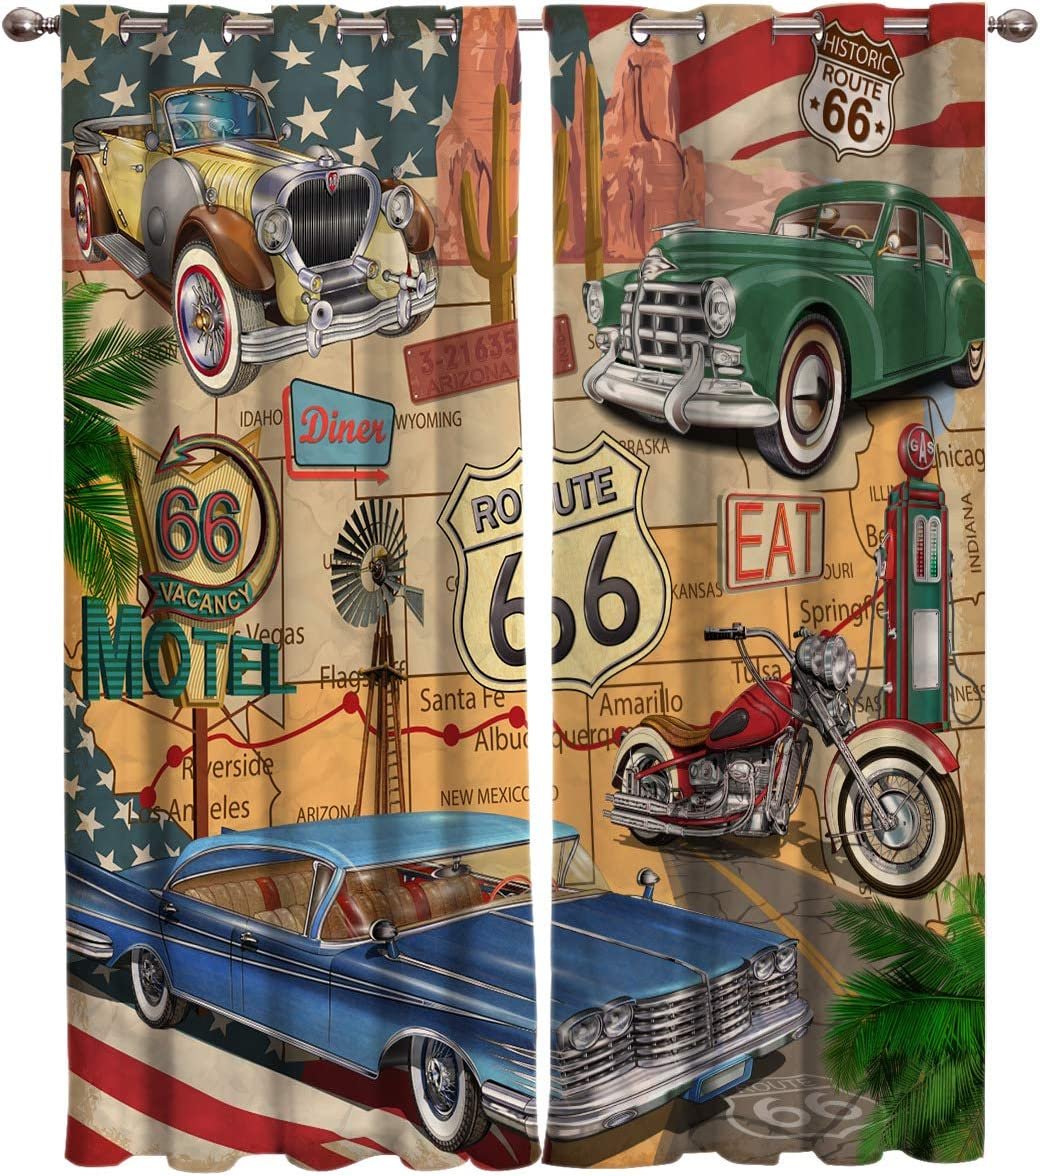 FortuneHouse8 Blackout Curtains Thermal Insulated Antique Classic Car American Route 66 Motorcycle Room Drapes Window Curtain for Bedroom Living Room Set of 2 Curtain Panels Home Fashion 40x84inch